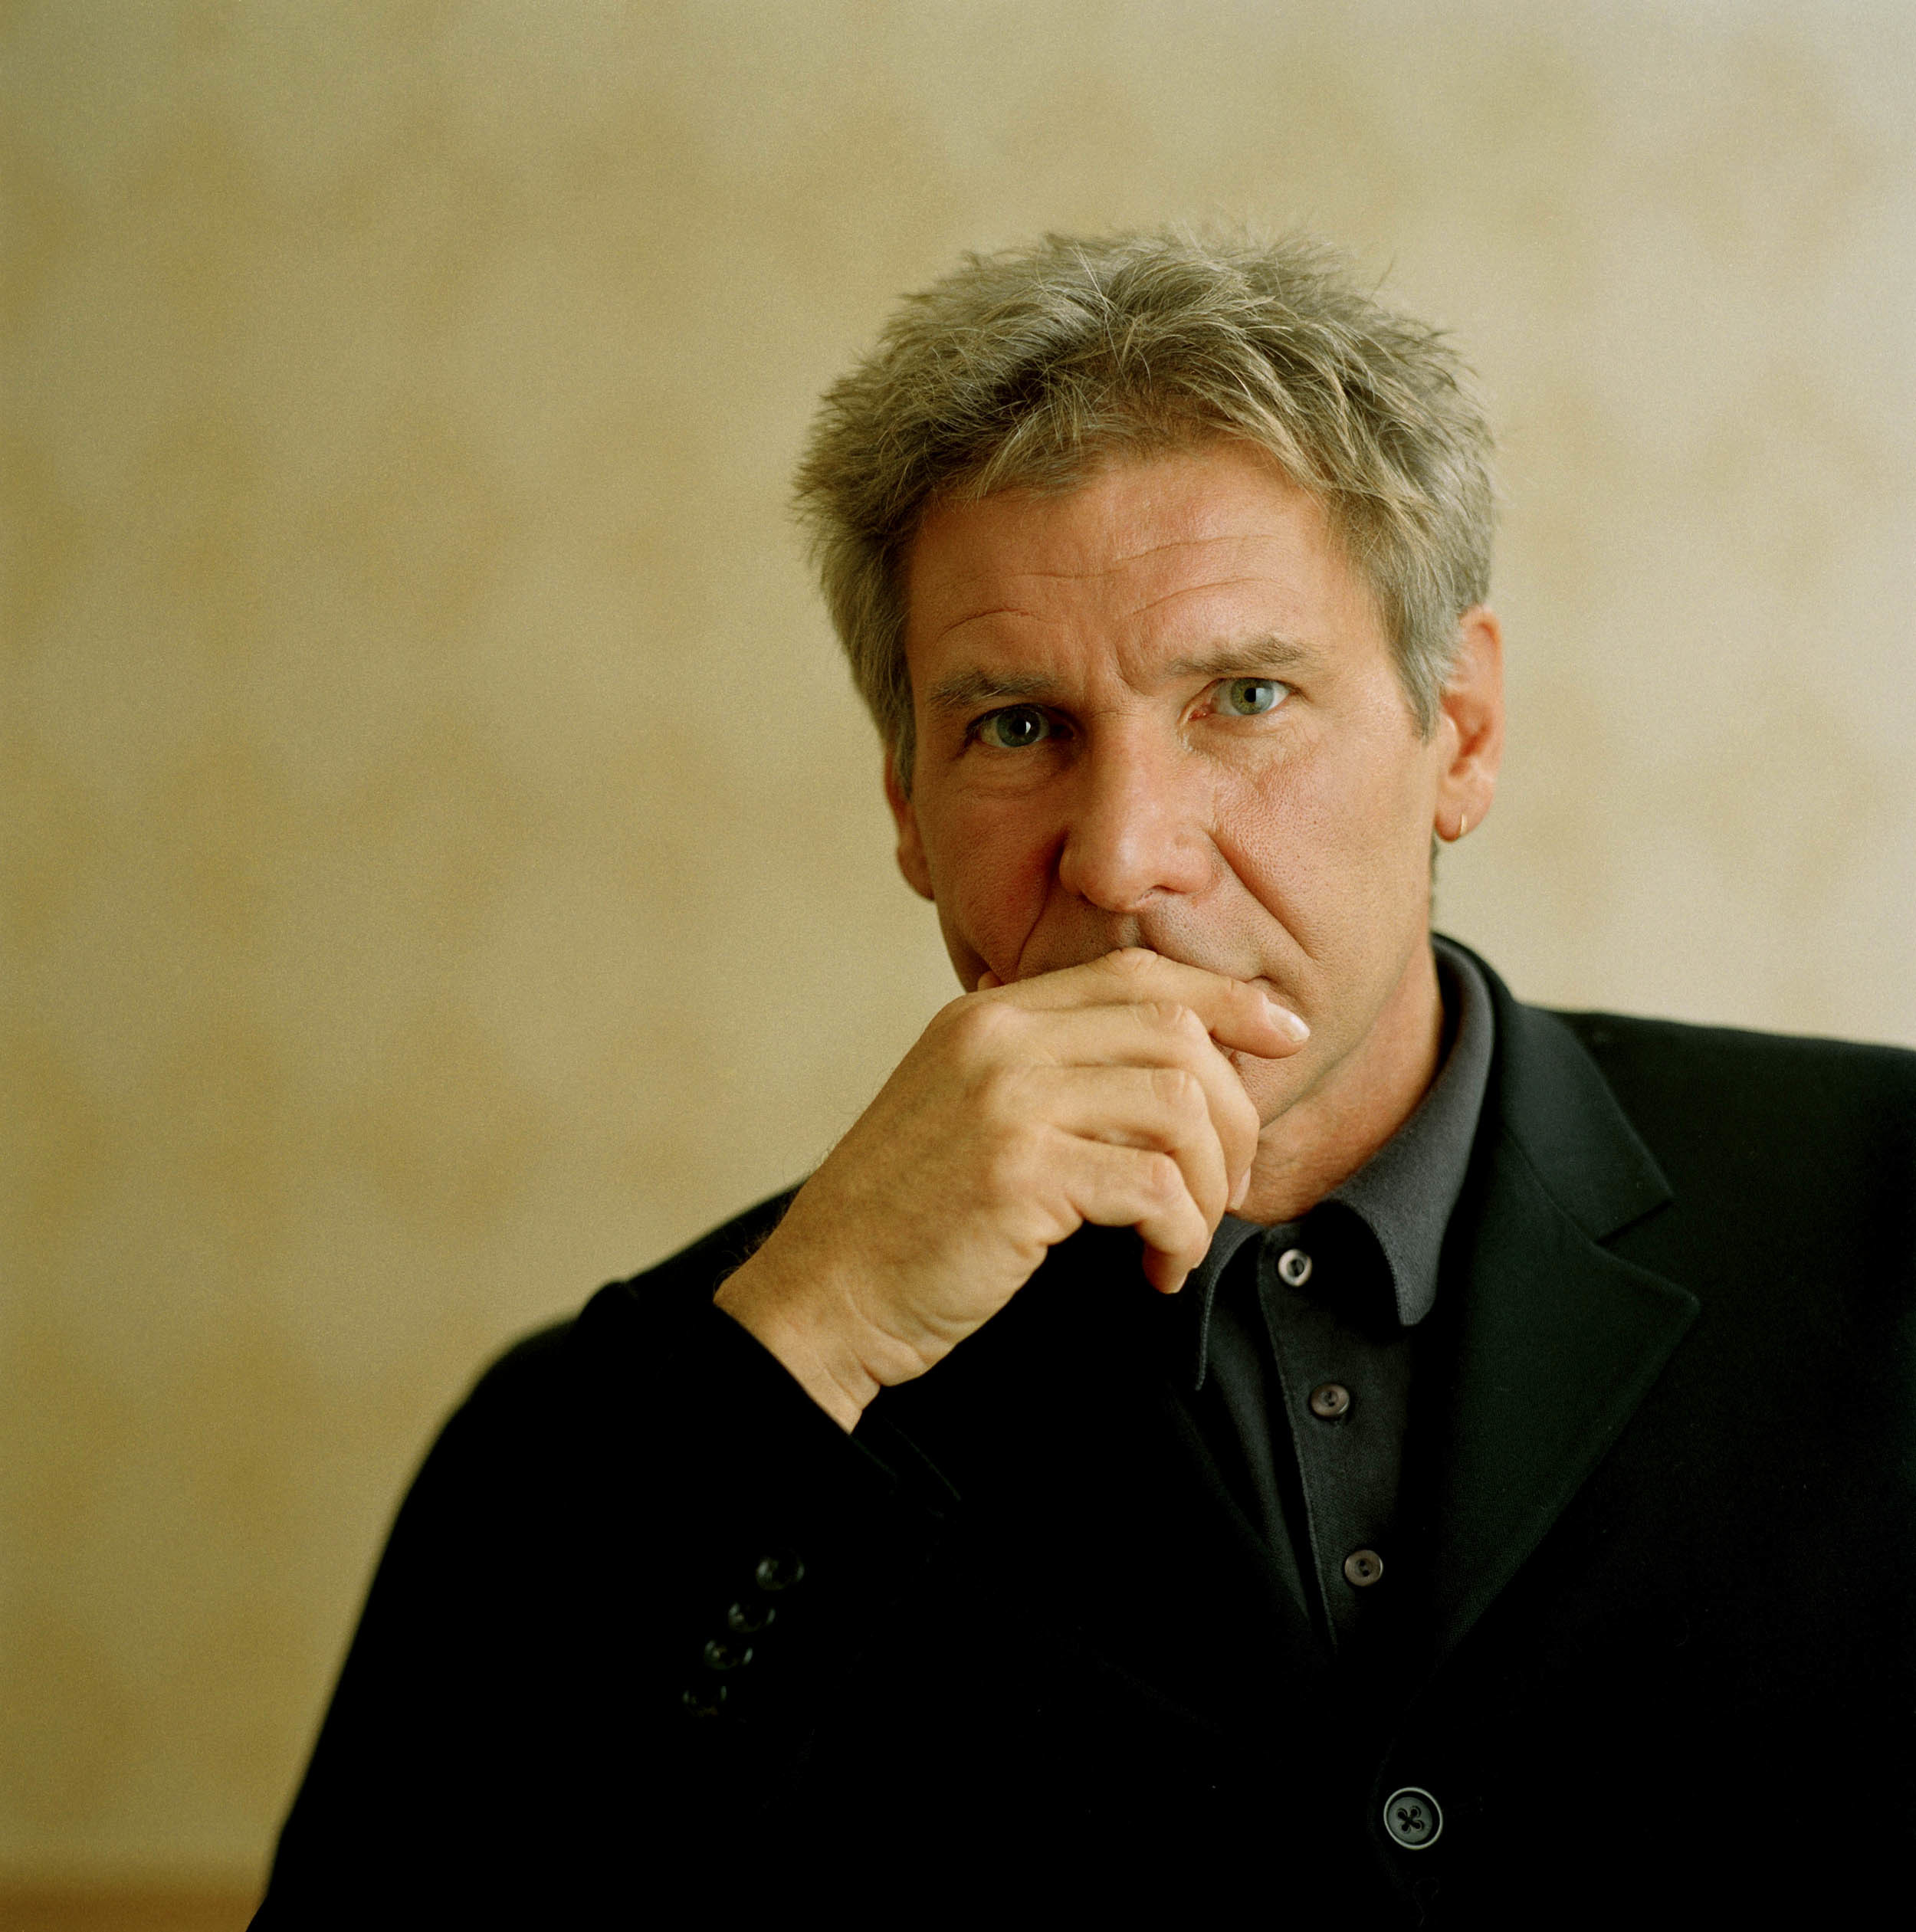 Men harrison Ford Celebrity HD Wallpaper